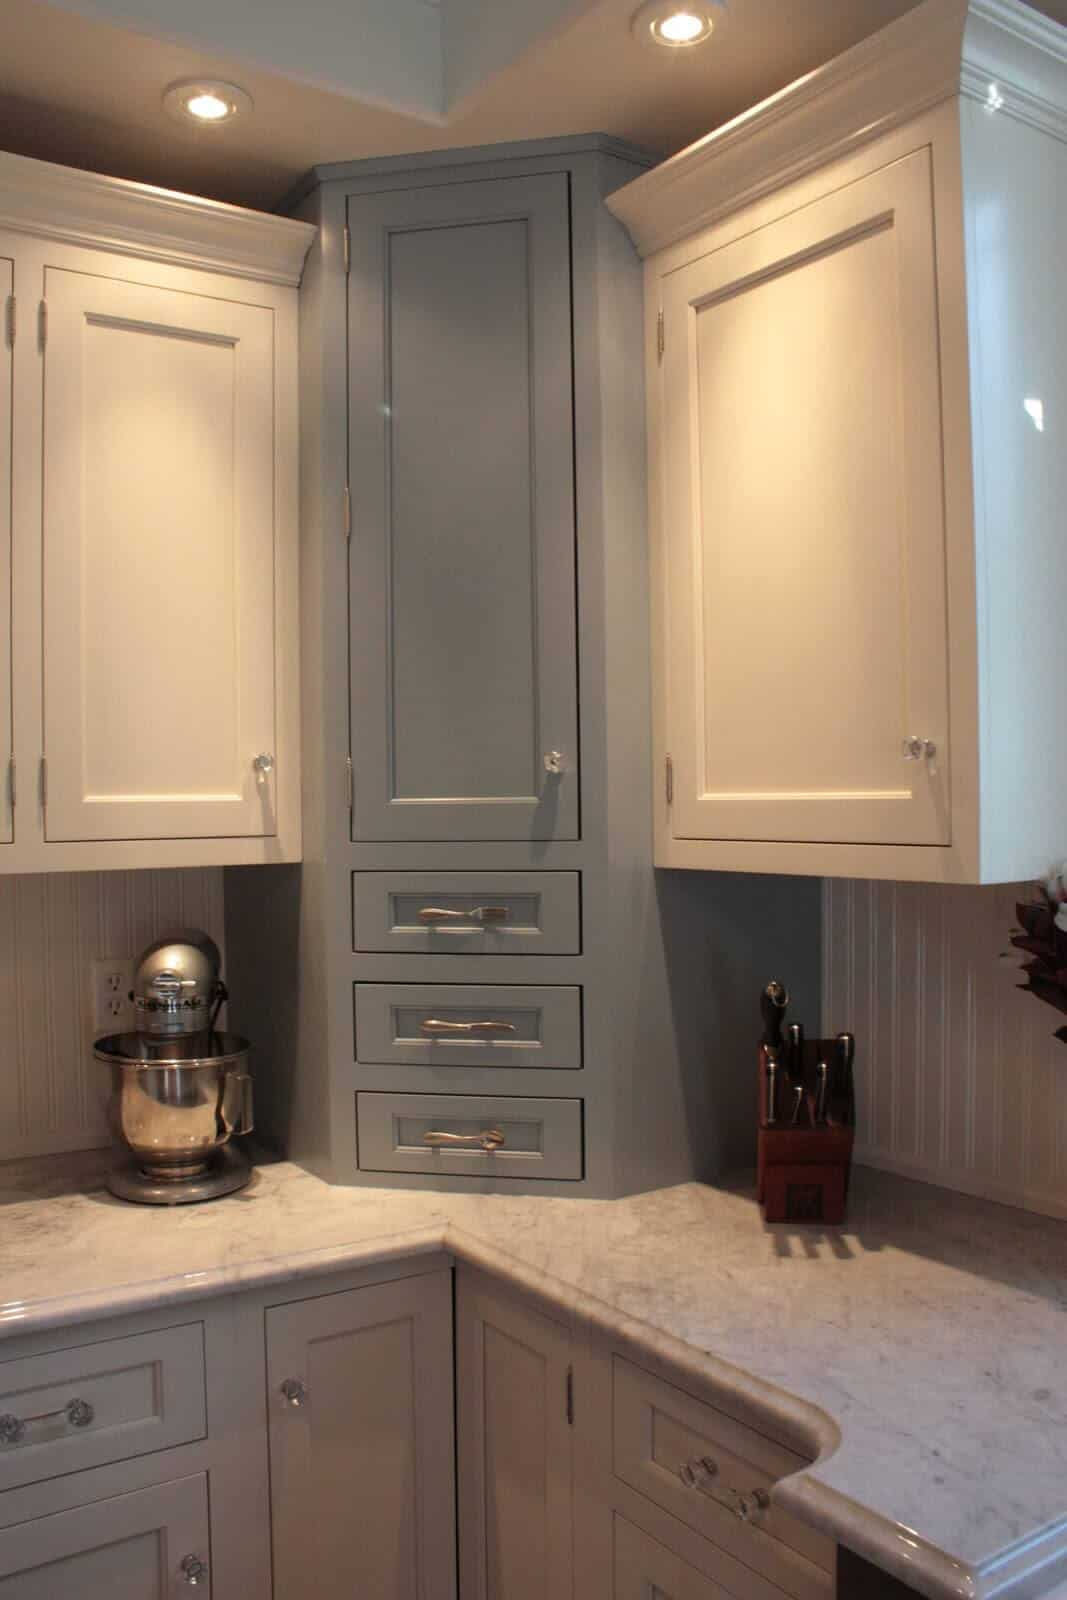 Here's a towering countertop to ceiling cabinet with drawers and cupboard.